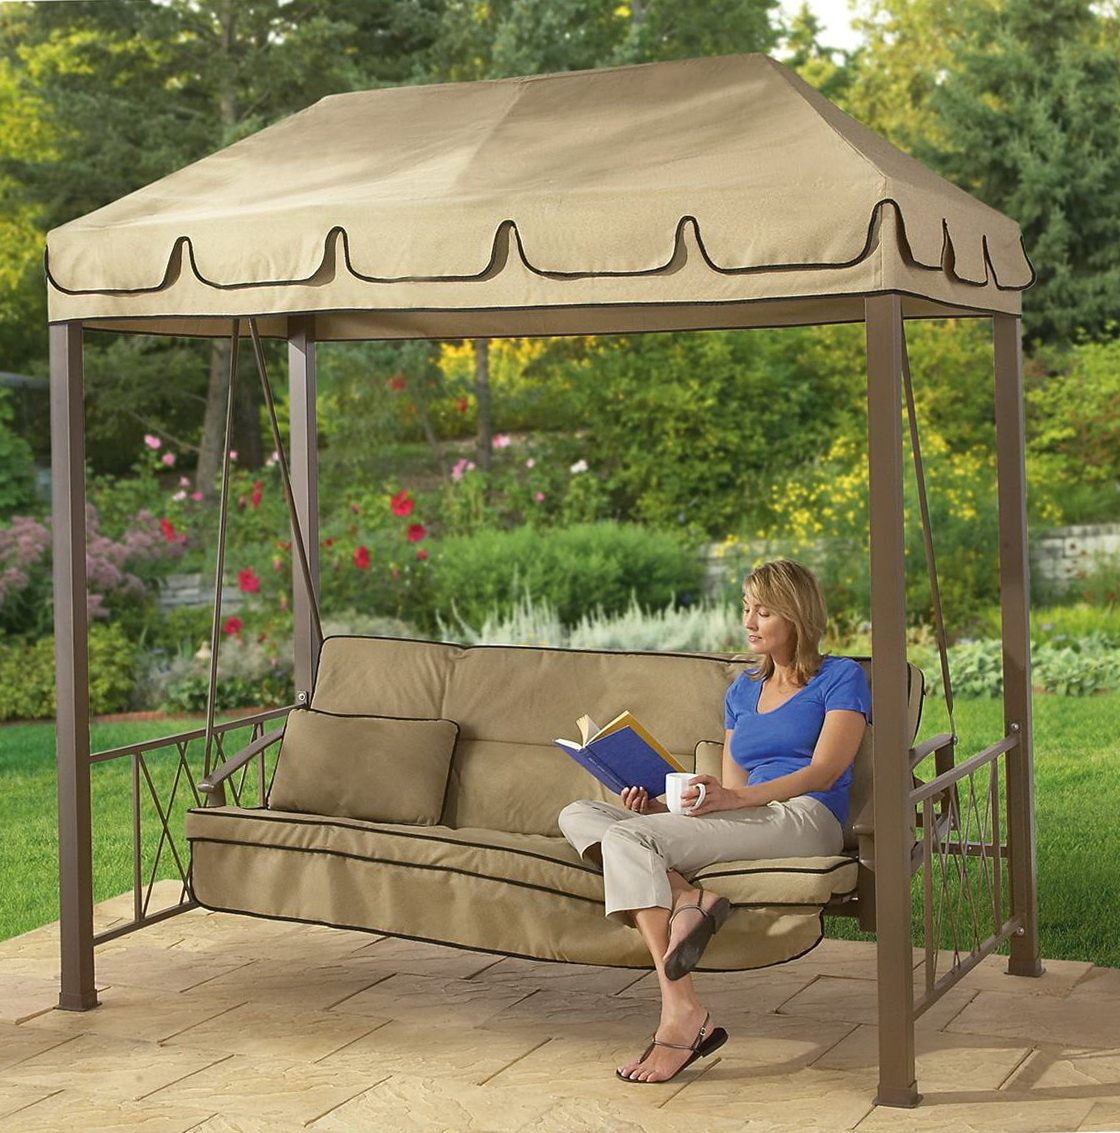 Courtyard Creations Replacement Cushions For Orbit Lounger